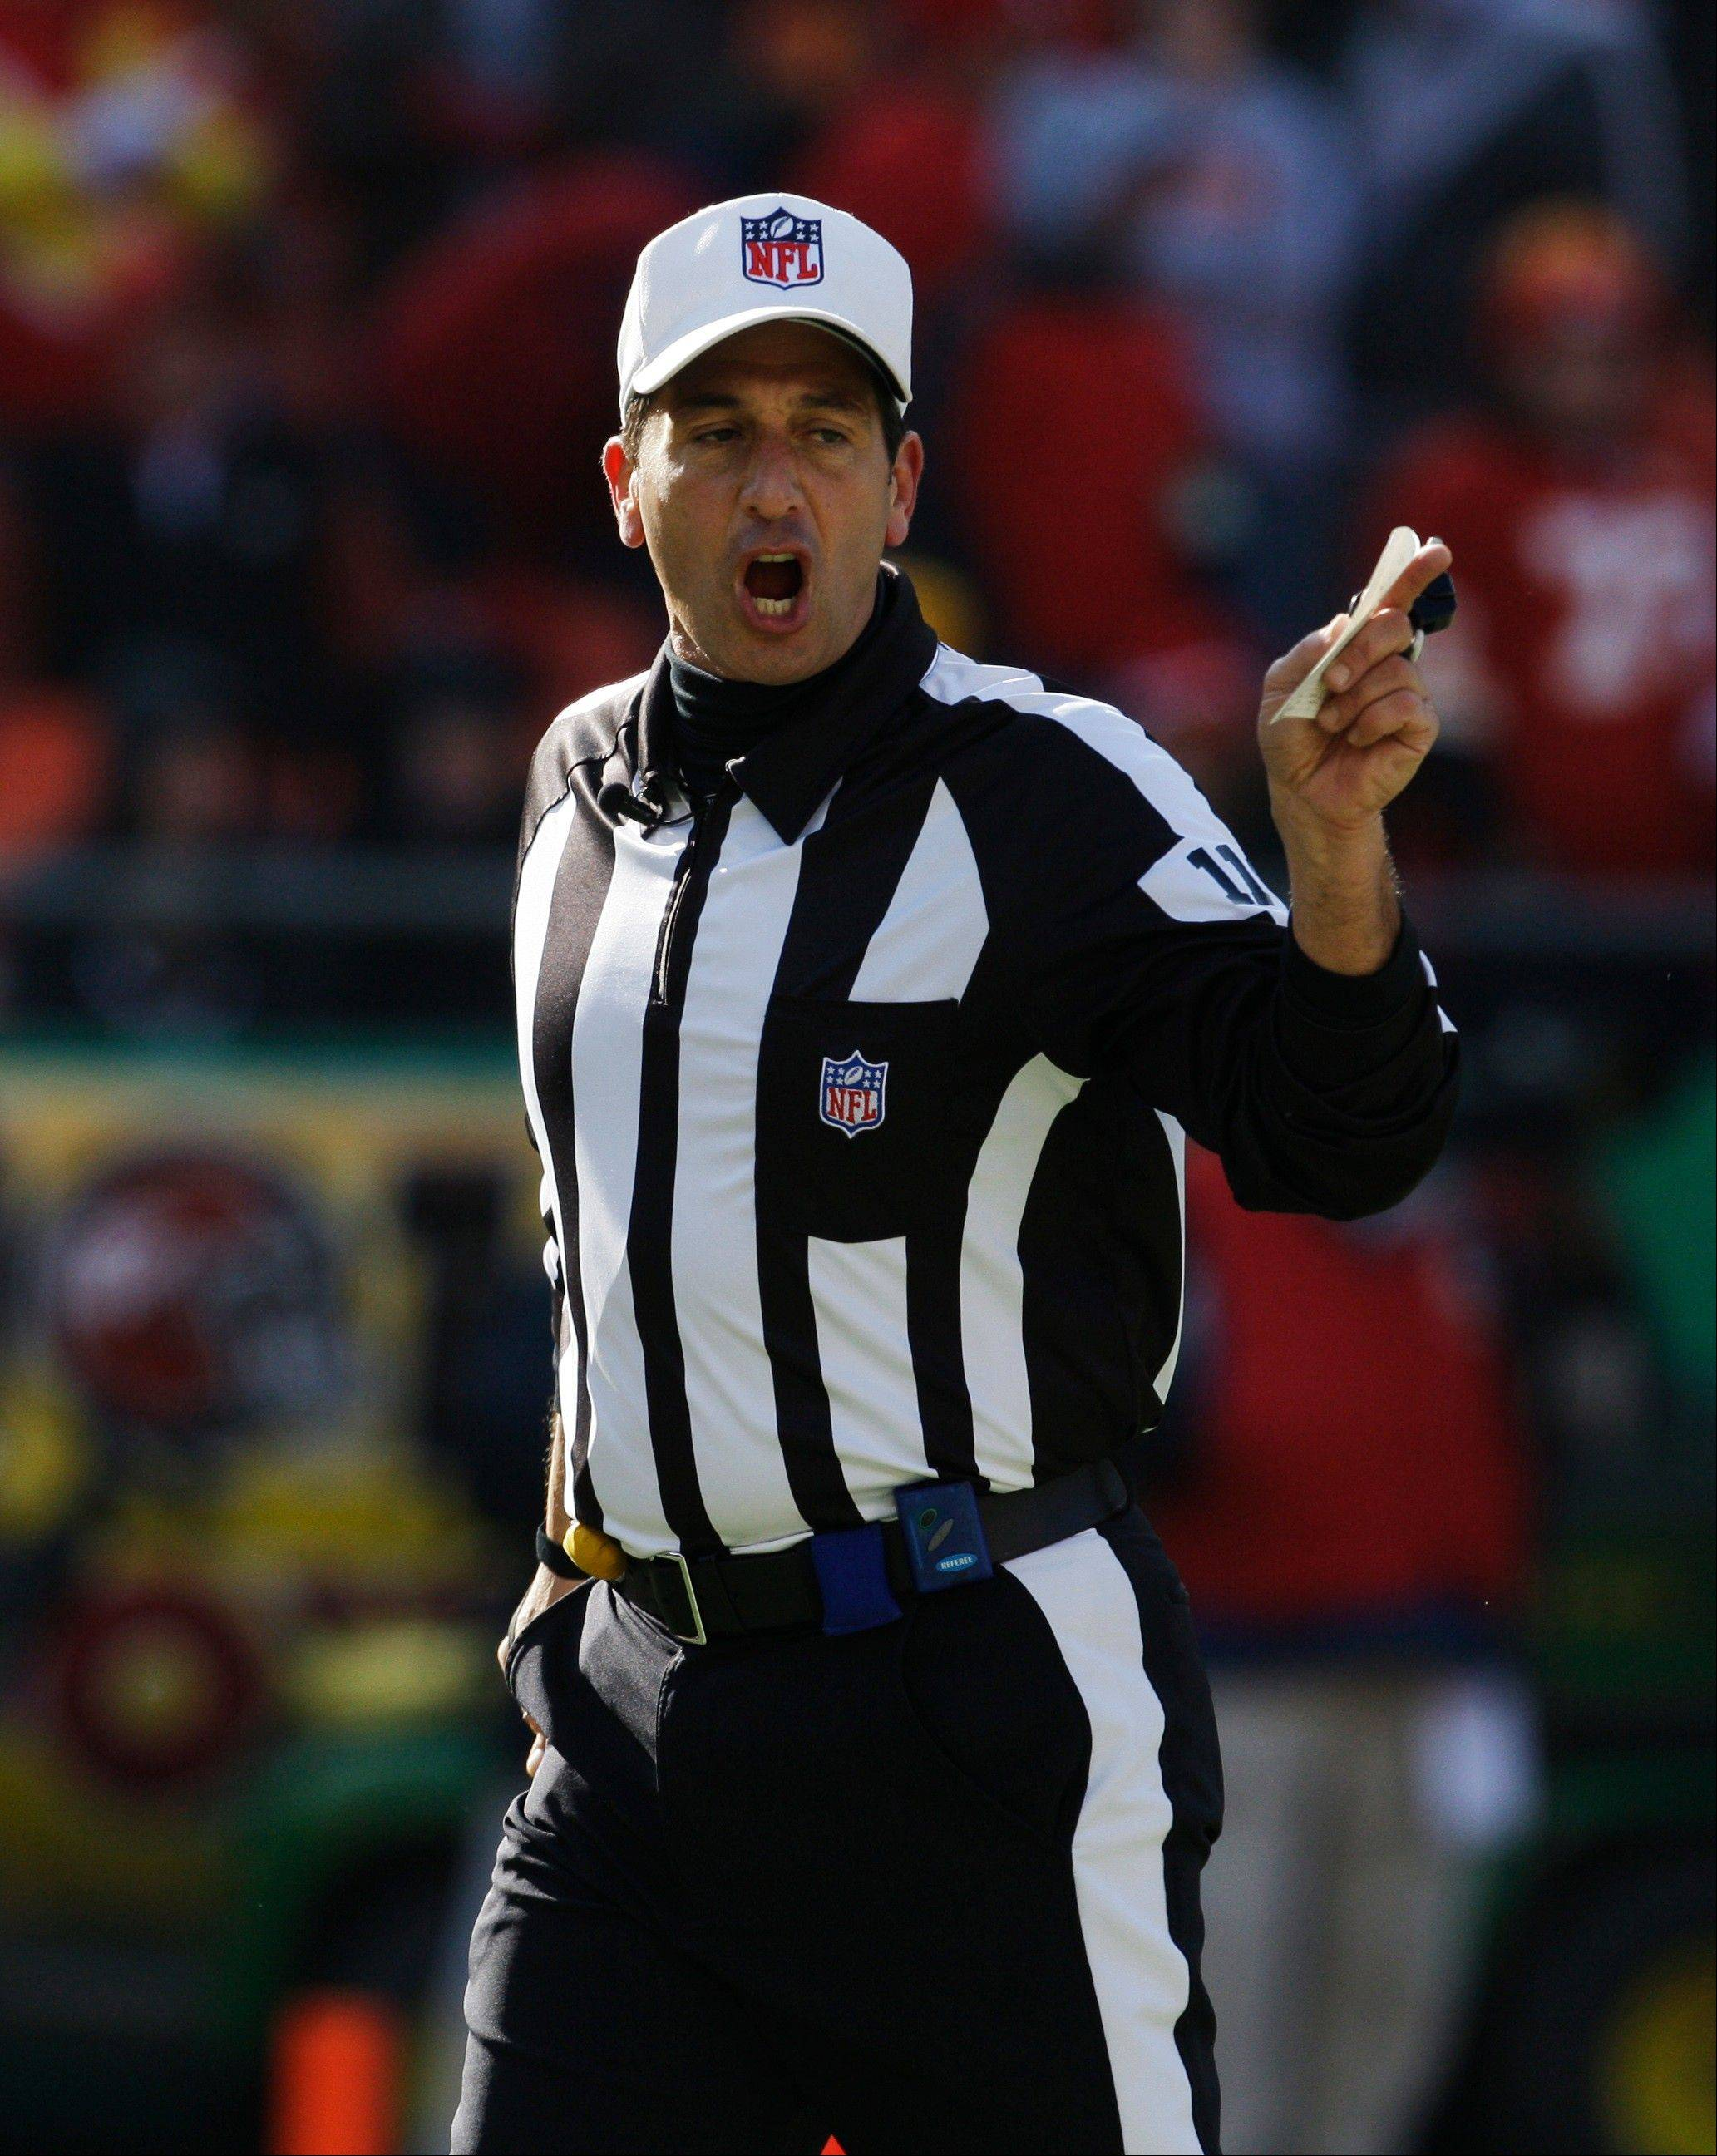 NFL referee Gene Steratore was picked to lead a seven-man crew of regular officials in calling Thursday night's game between the Cleveland Browns and Baltimore Ravens. The union and league agreed to a new deal at midnight Thursday.